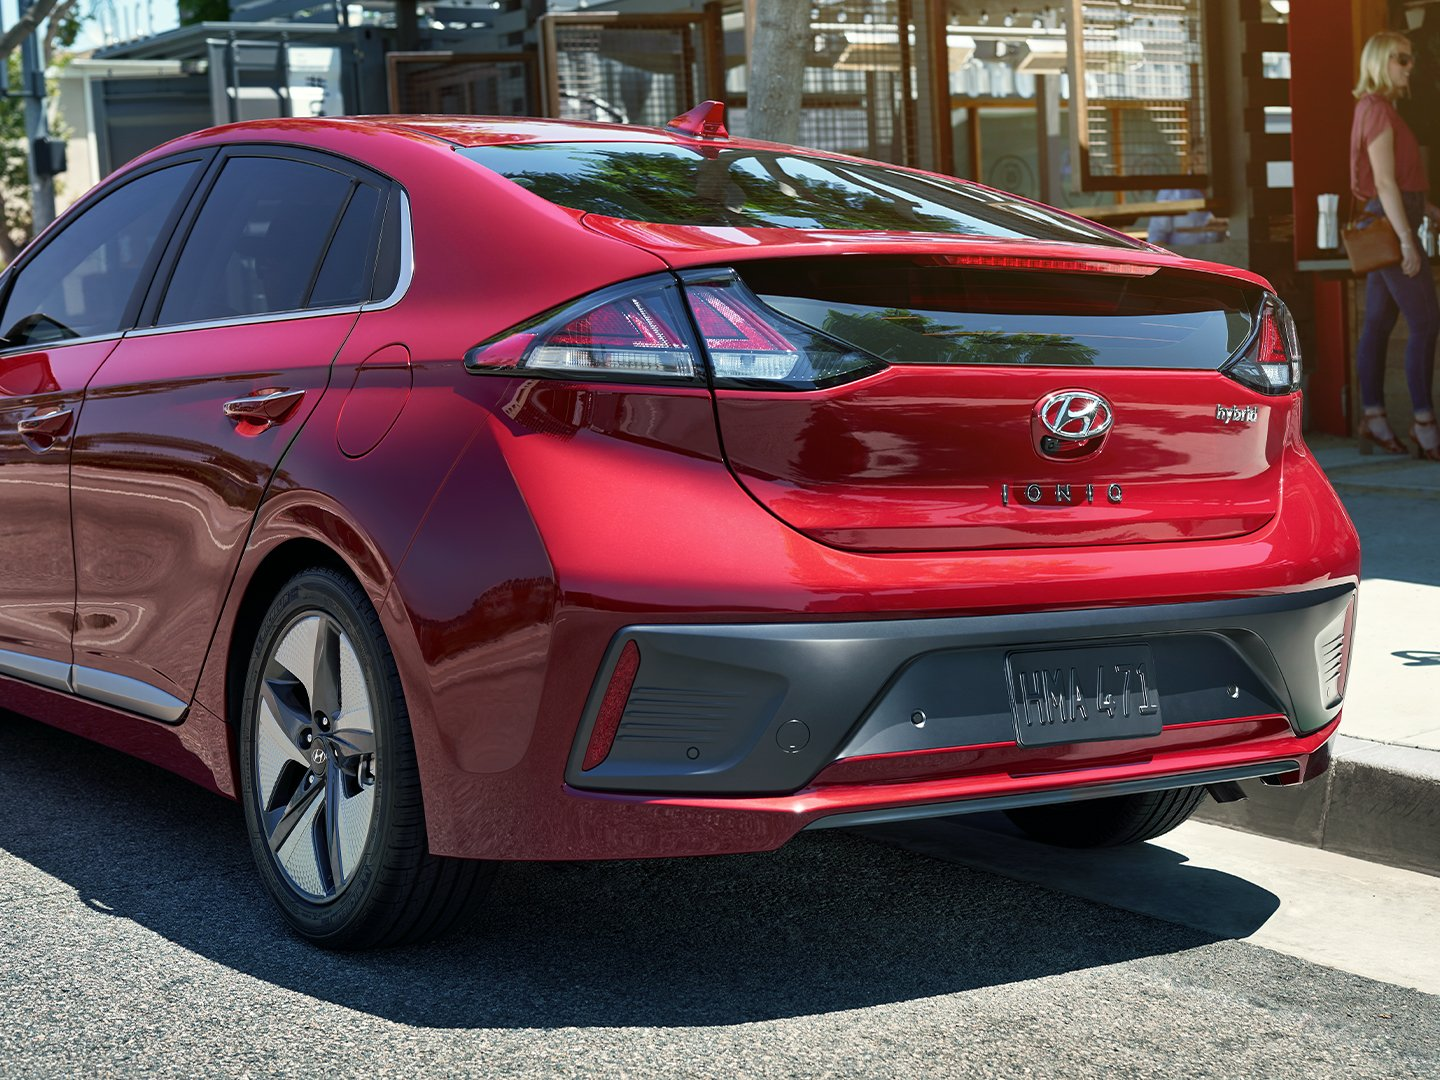 2020 Ioniq Hybrid rear view